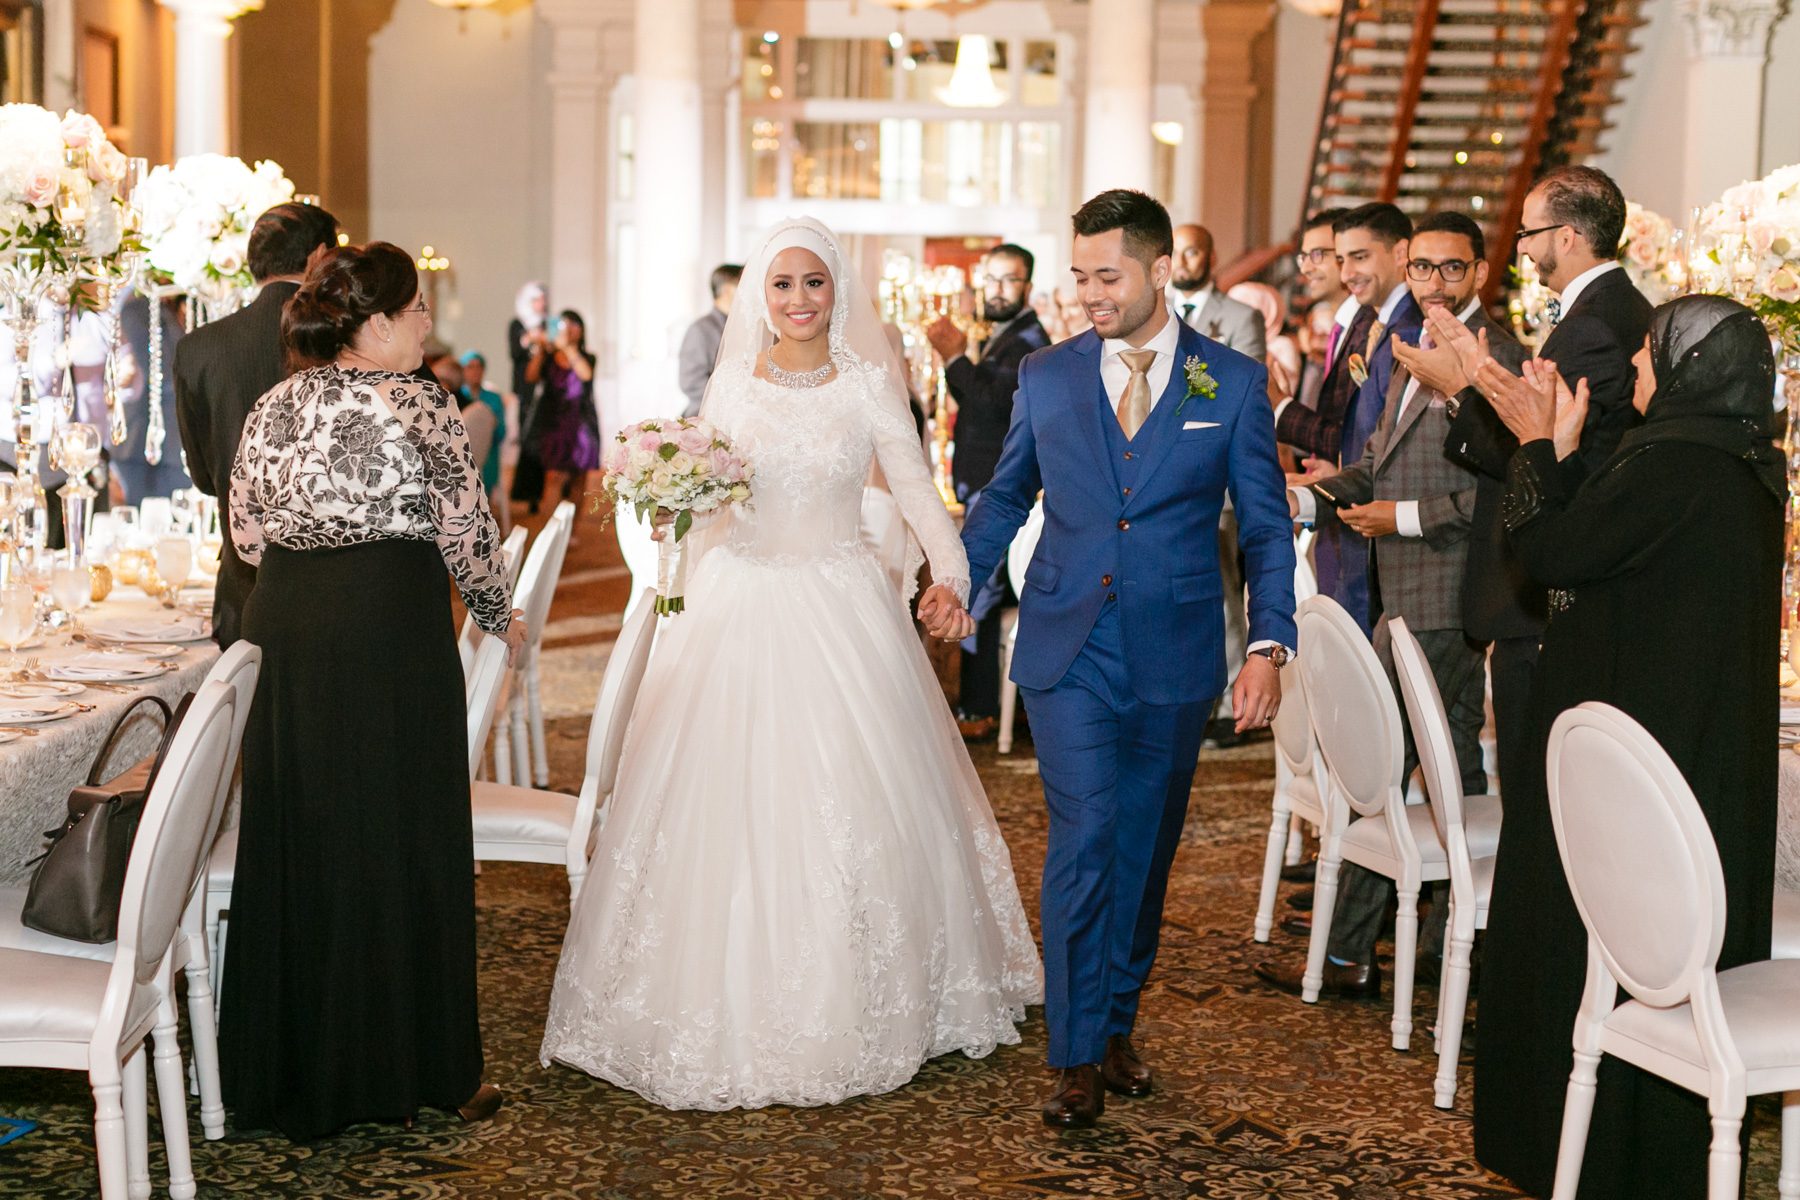 joeewong-ayad-liberty-grand-toronto-wedding-217